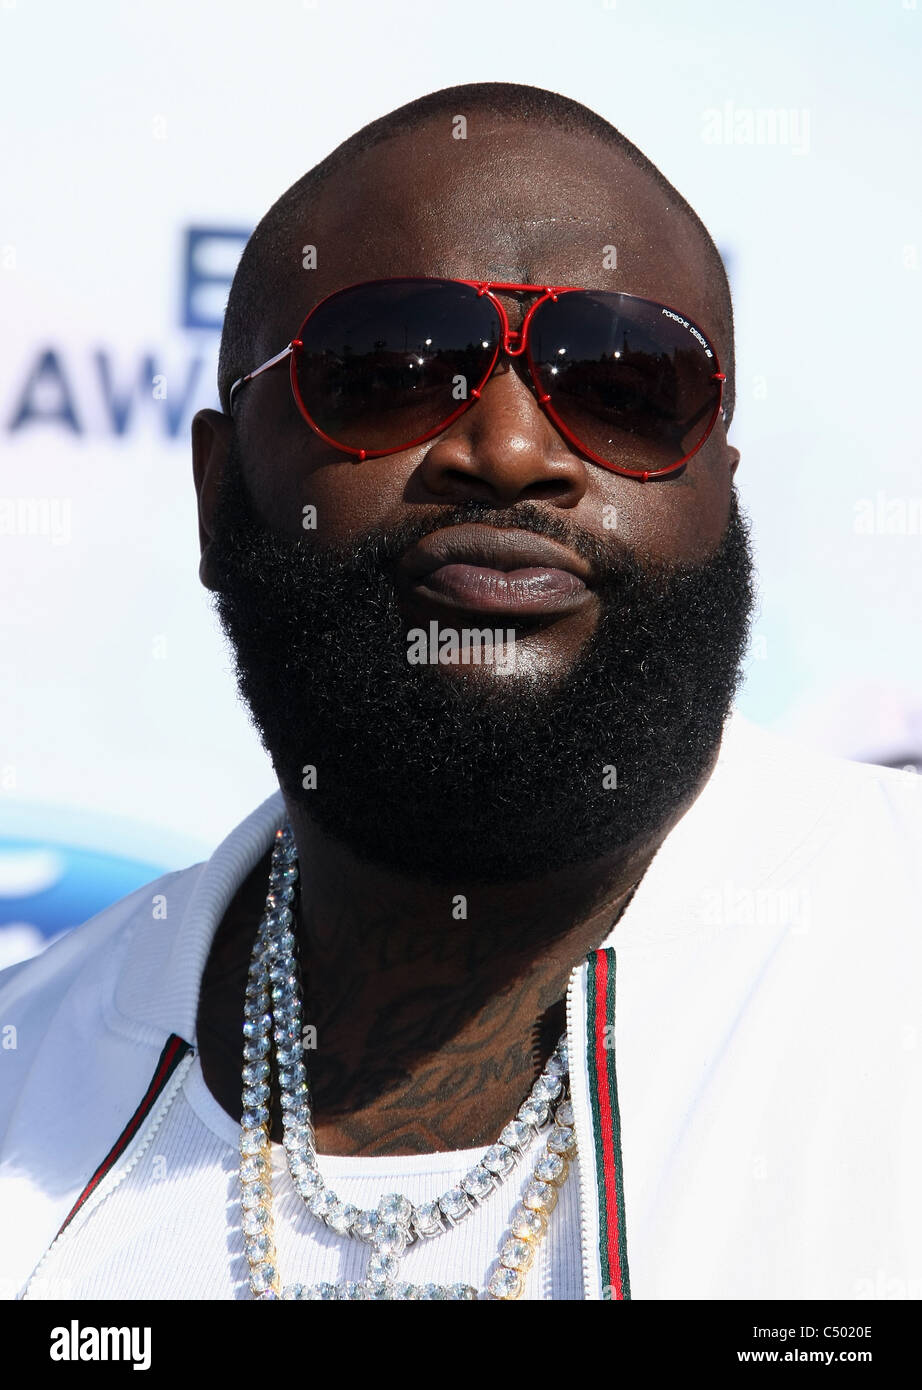 2ad02ca0ee7 Rick ross bet awards arrivals downtown los angeles california usa june jpg  922x1390 Rick ross sunglasses